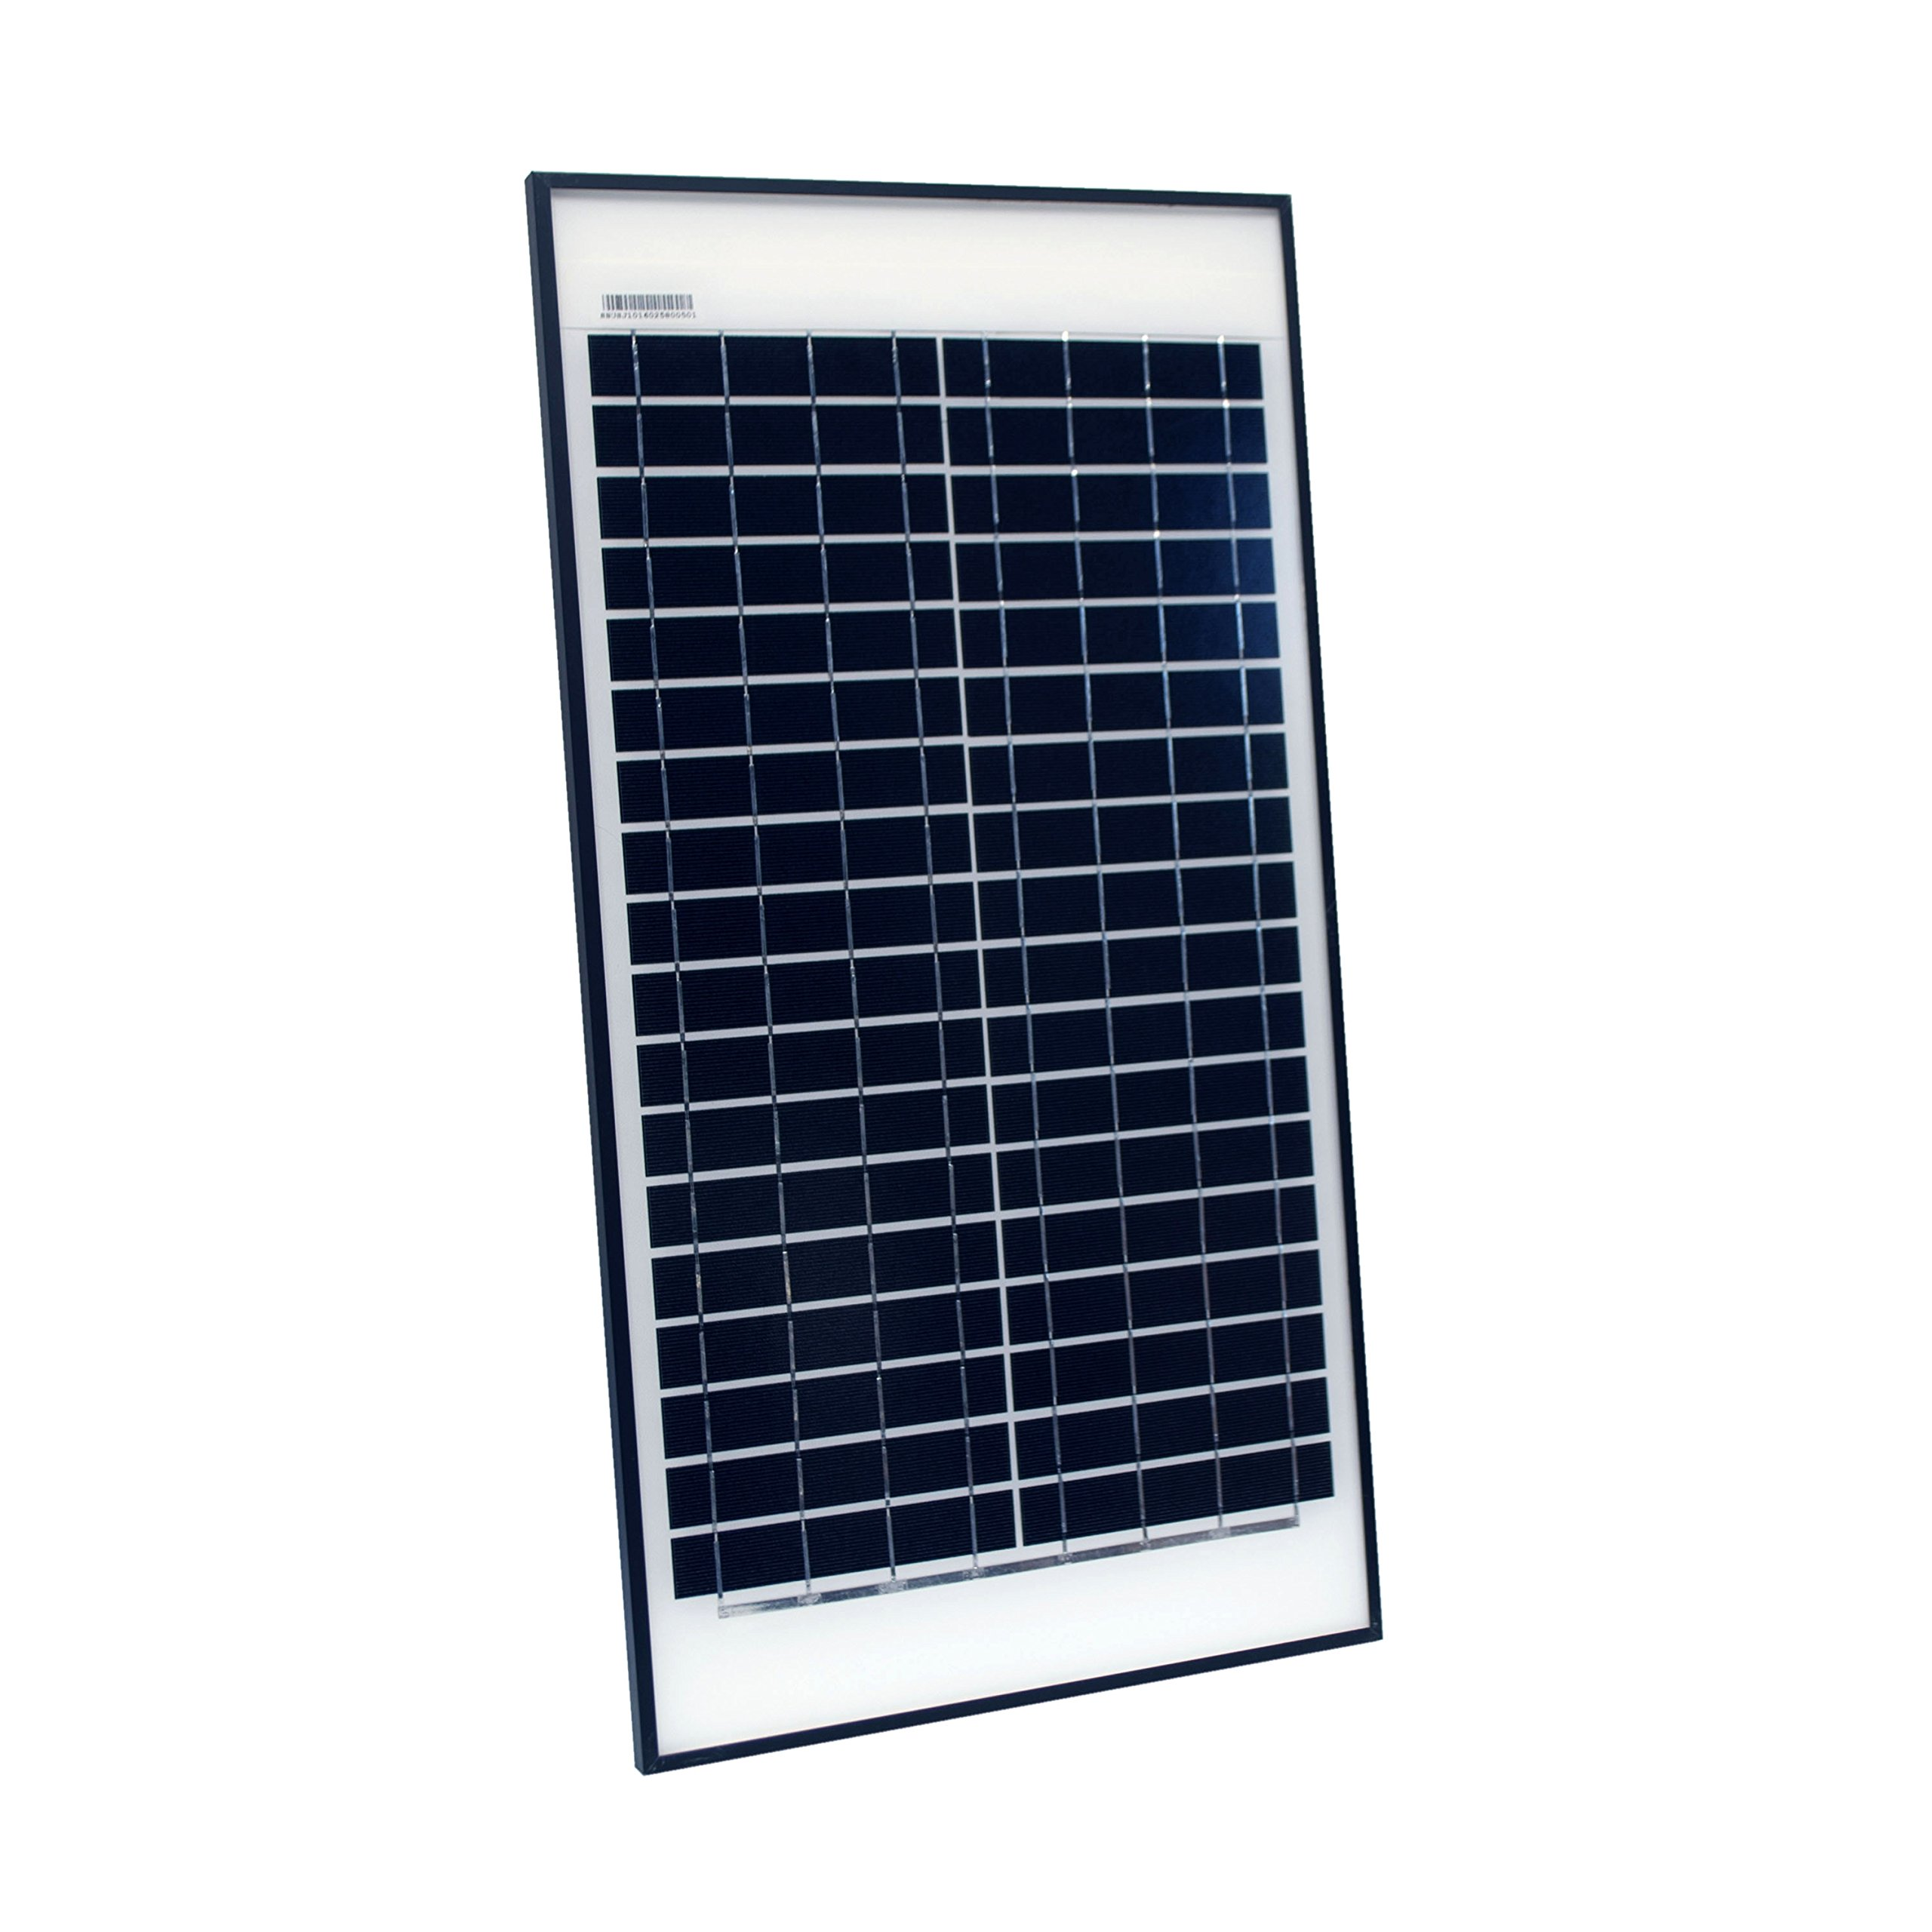 Cheap 280watt Solar Panel Modules, find 280watt Solar Panel Modules